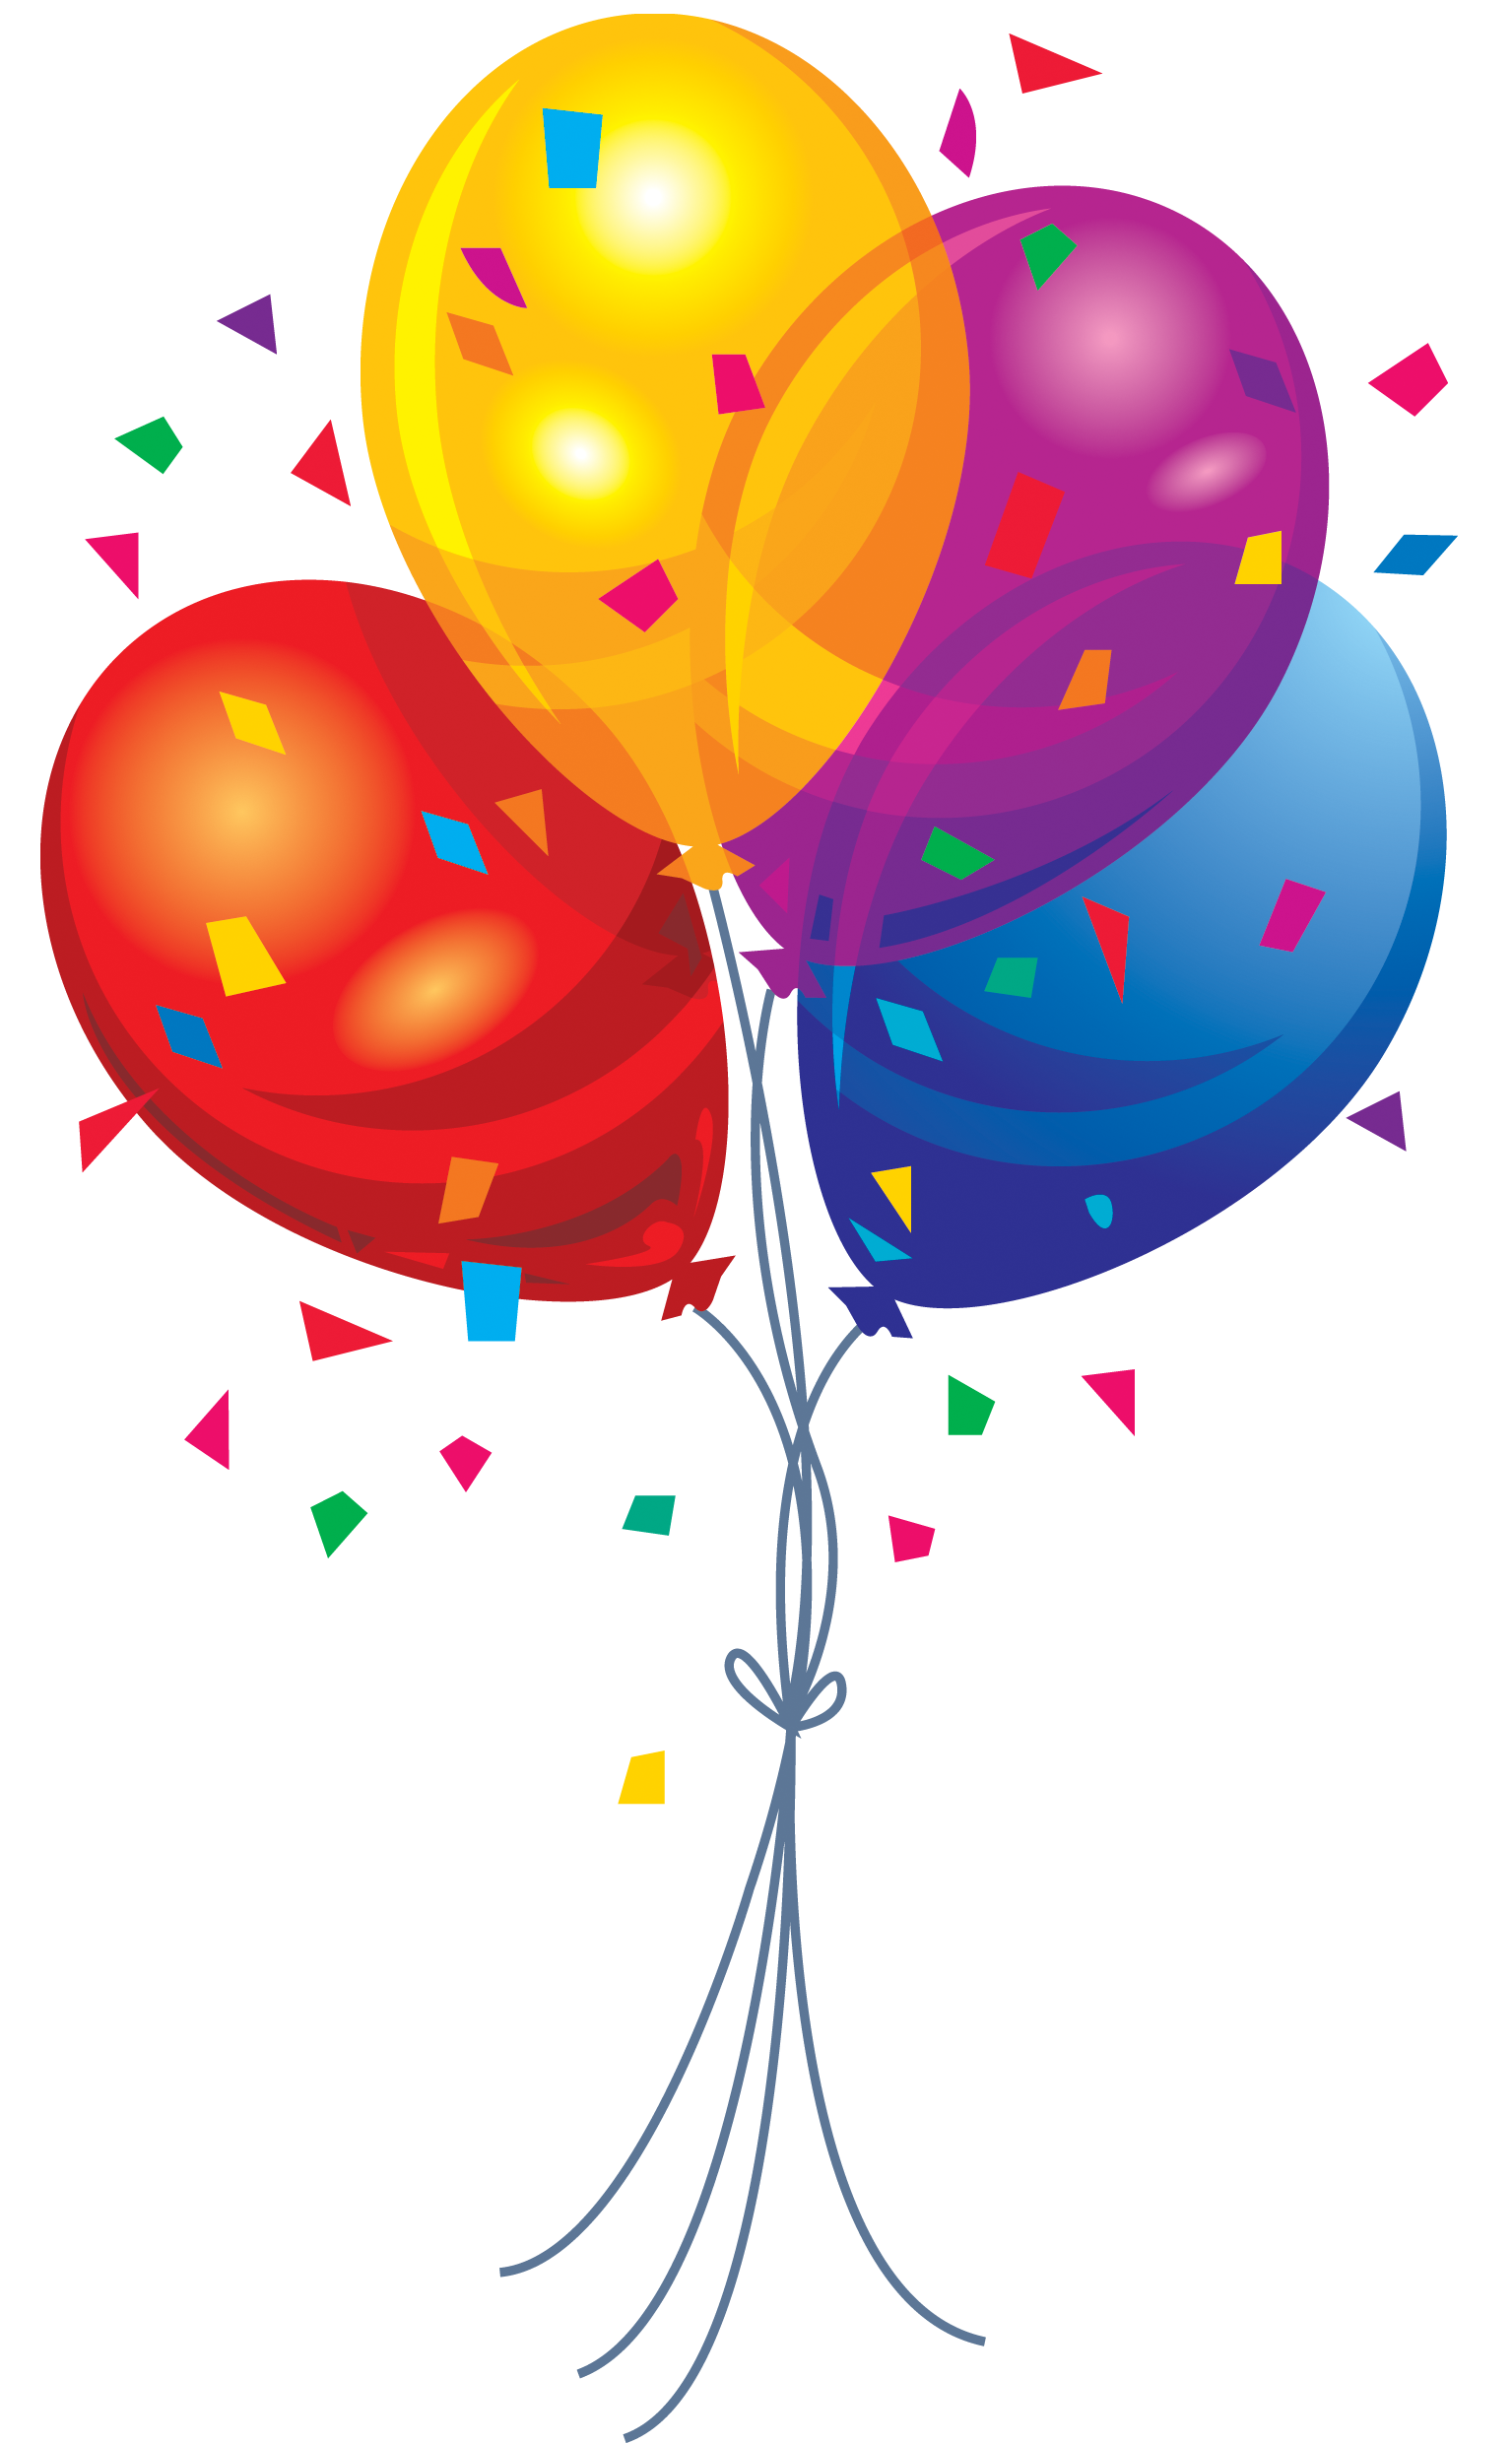 Balloon images free picture. Happy birthday balloons png image royalty free download